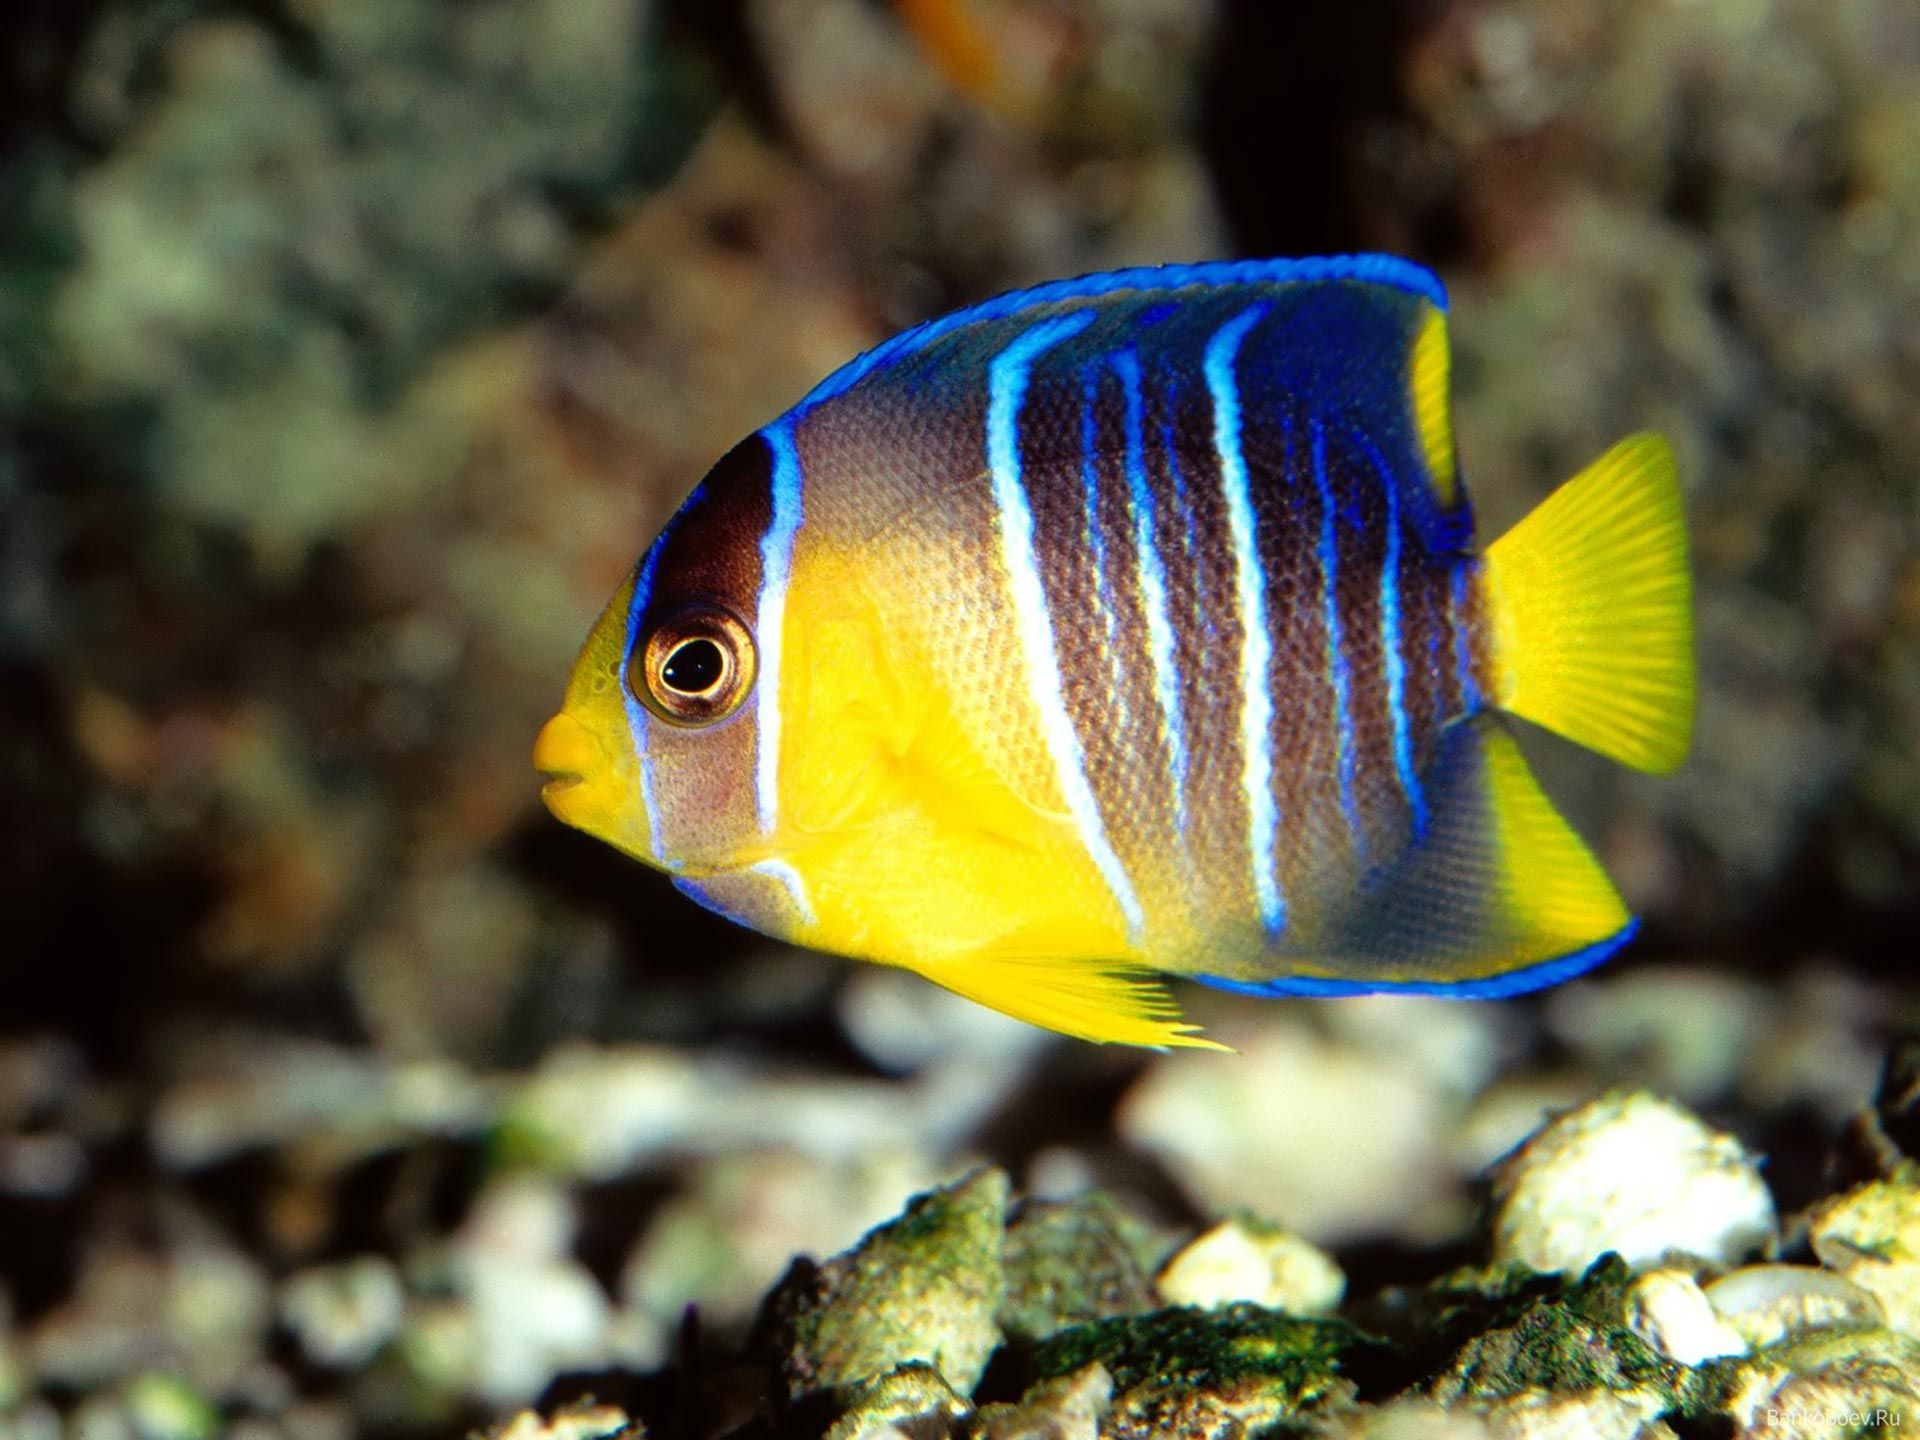 Collection Of Fish Hd Wallpaper On Hdwallpapers 1600 1200 Fish